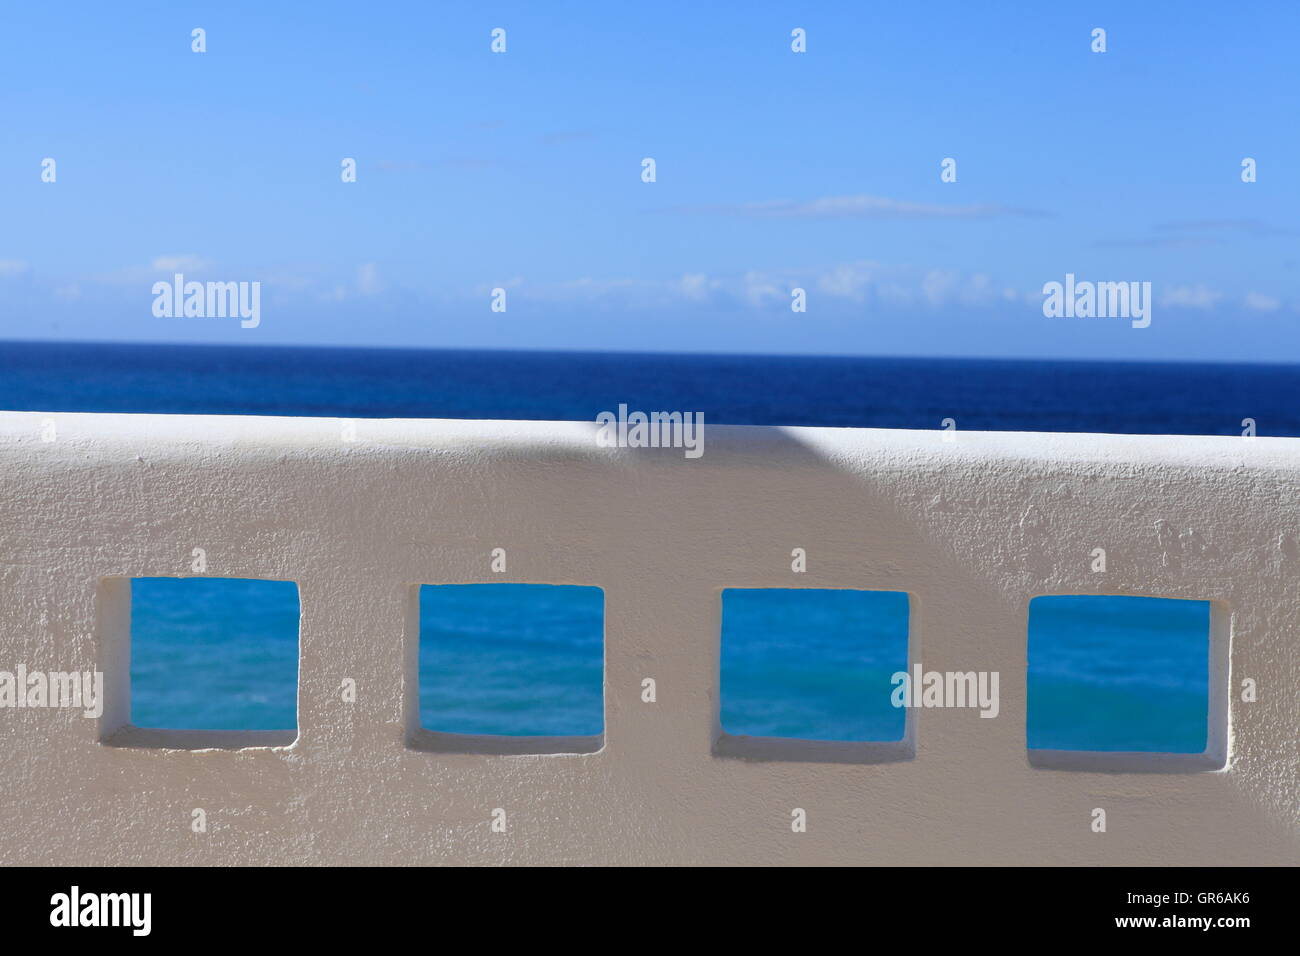 Seaside Holiday Stock Photo